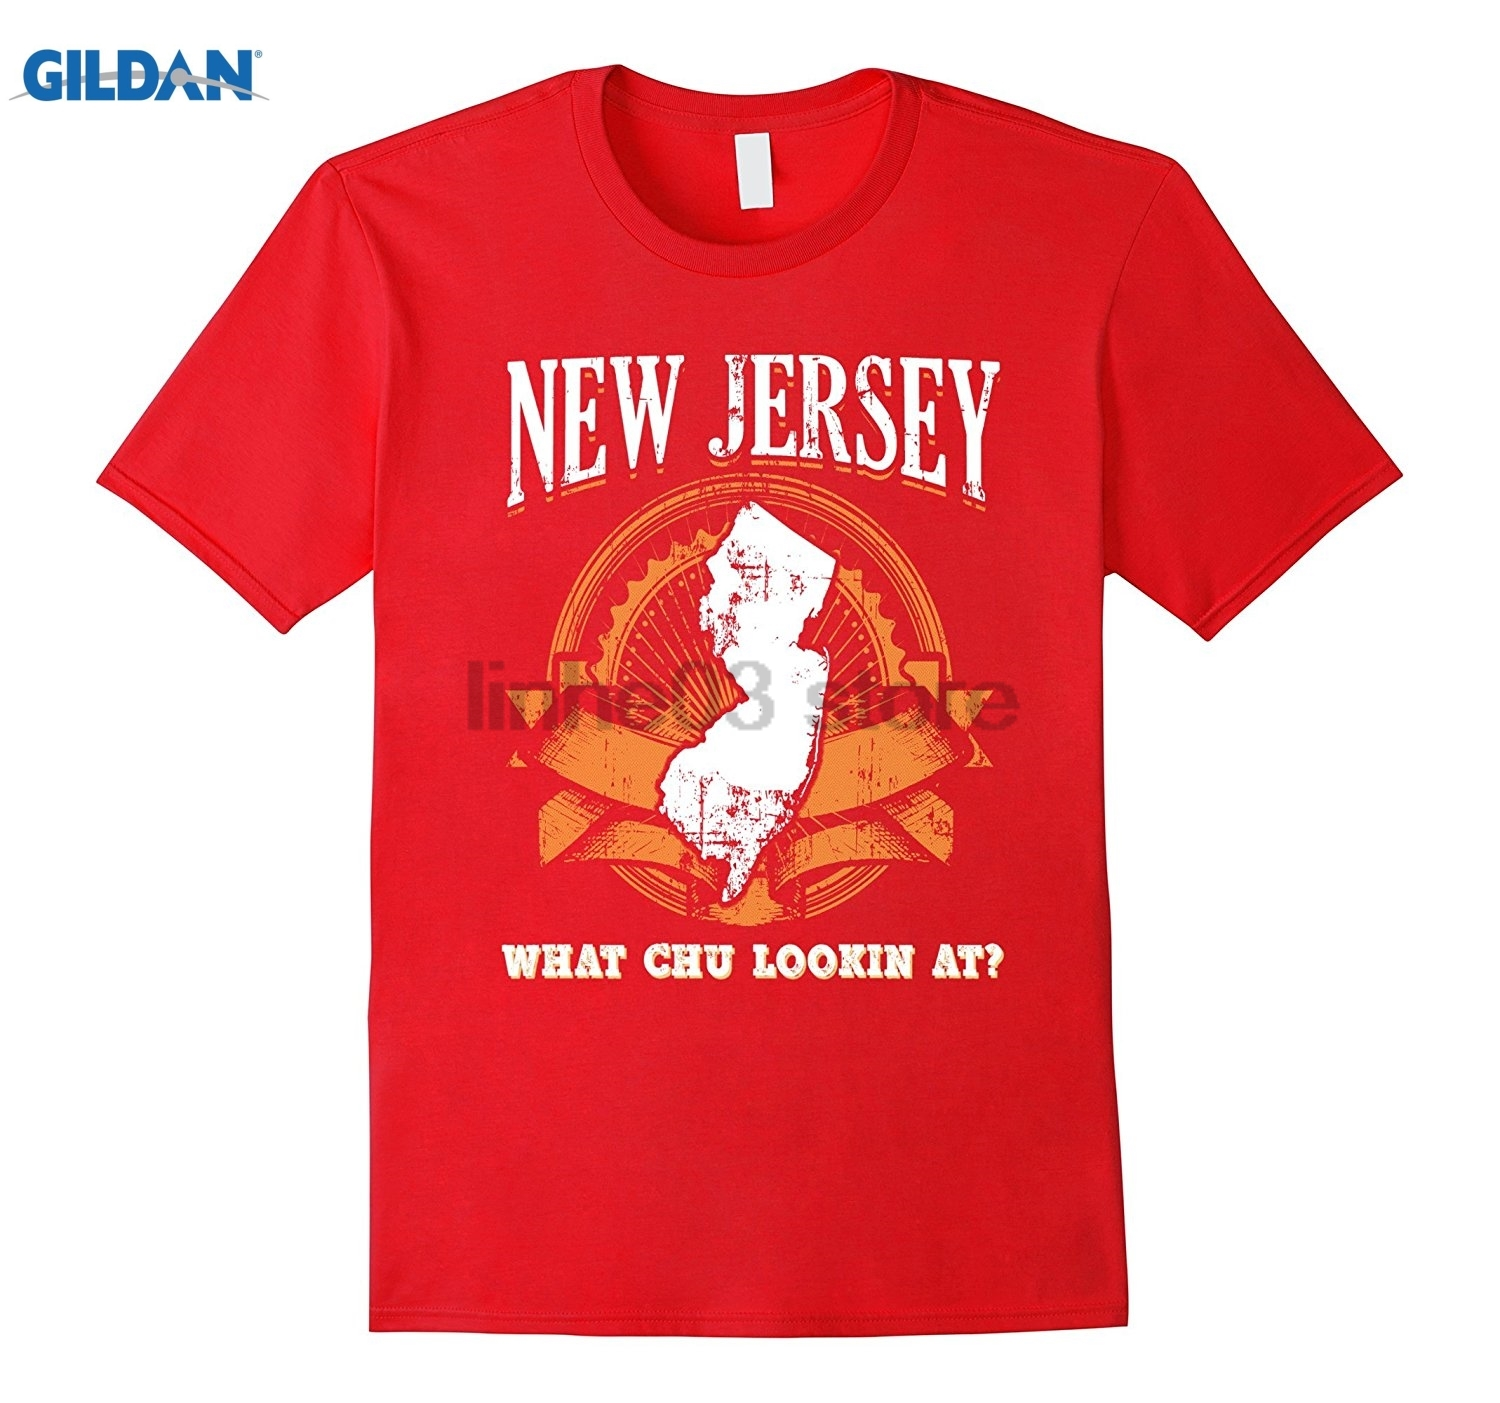 GILDAN New Jersey Funny Shirt Fake State Motto Slogan Gag Gift USA glasses Womens T-shirt